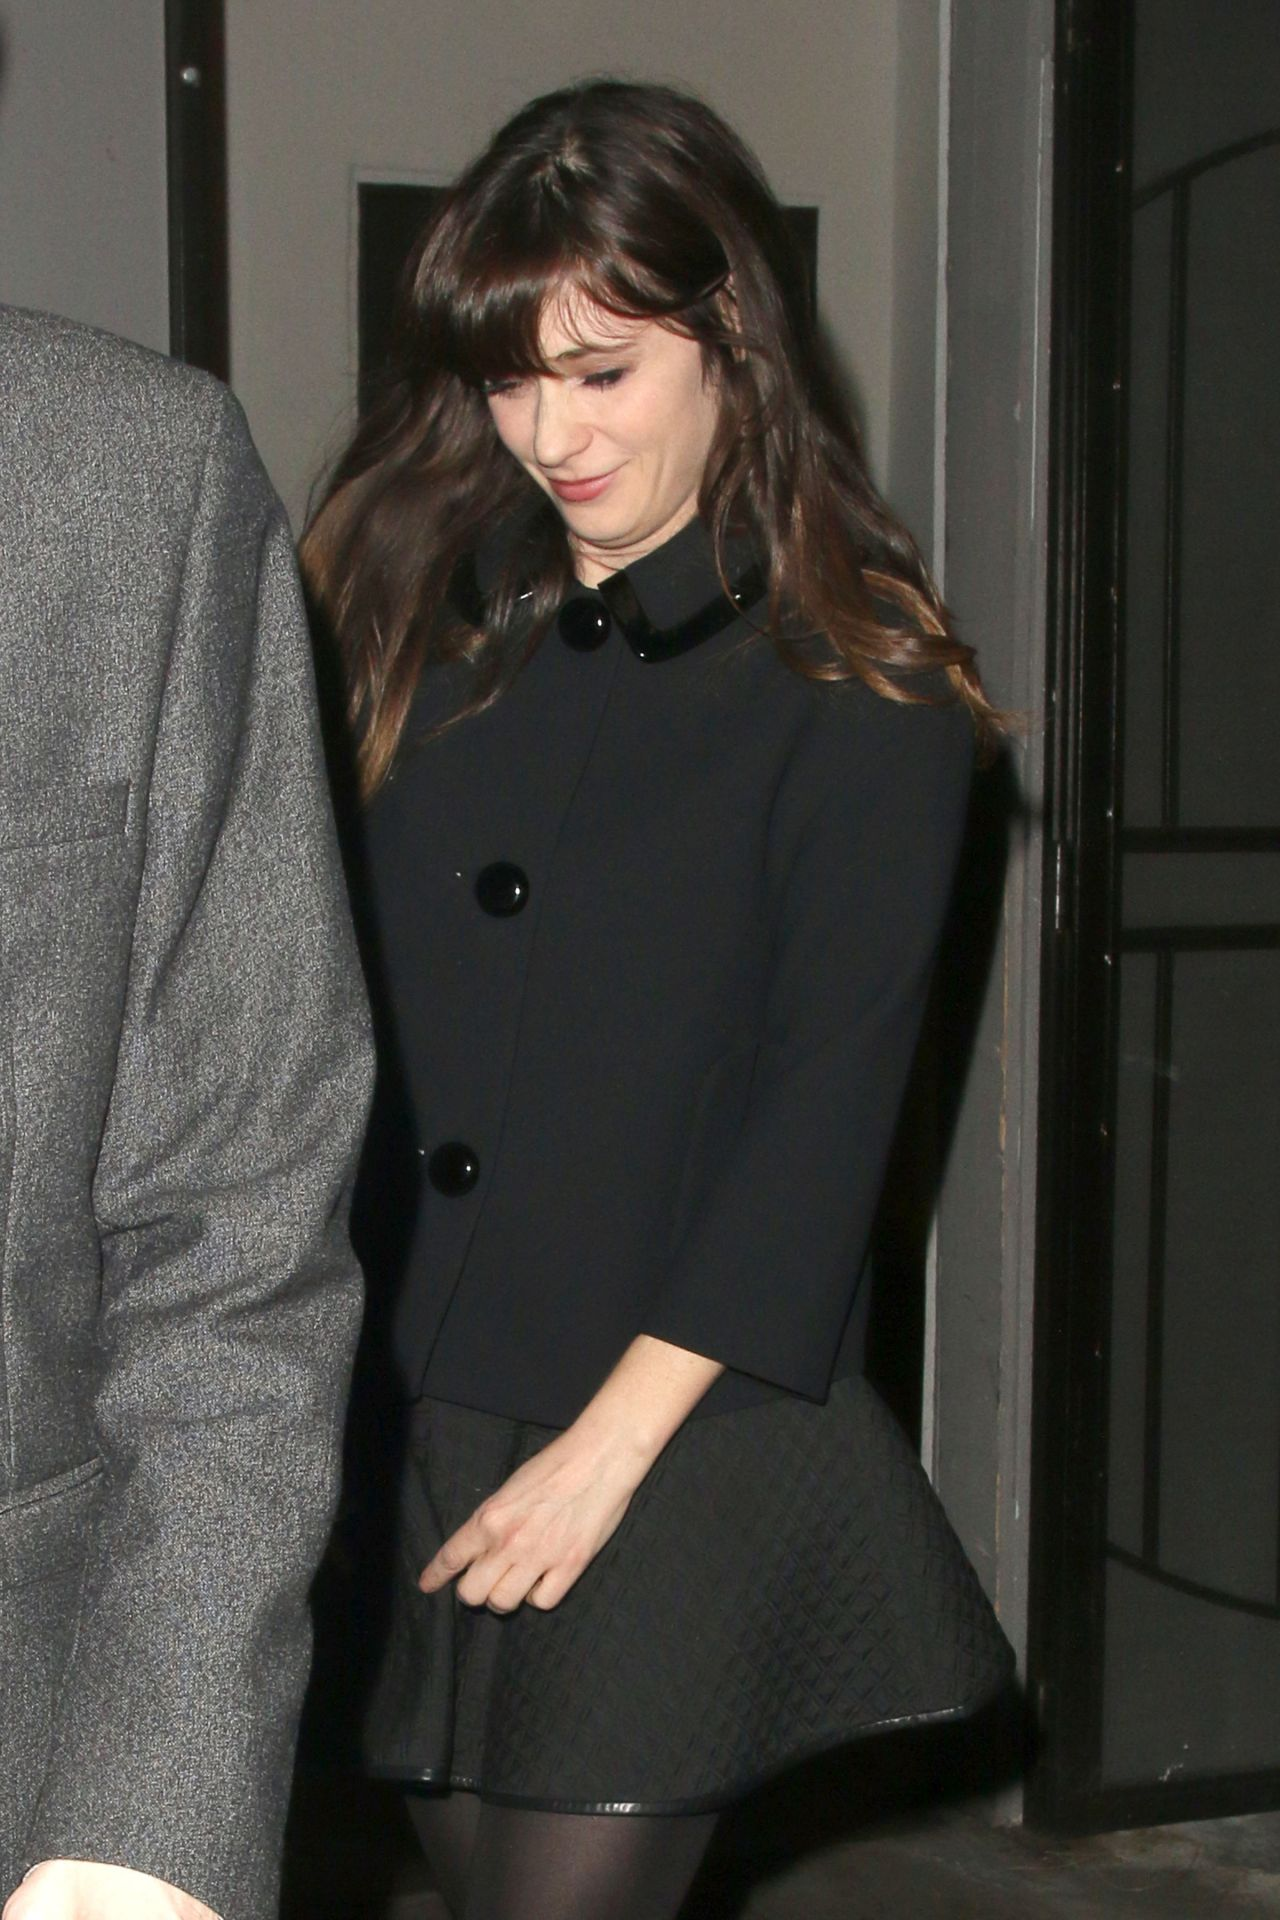 Zooey Deschanel - Leaving The Crossroads Vegan Restaurant in West Hollywood - January 2014